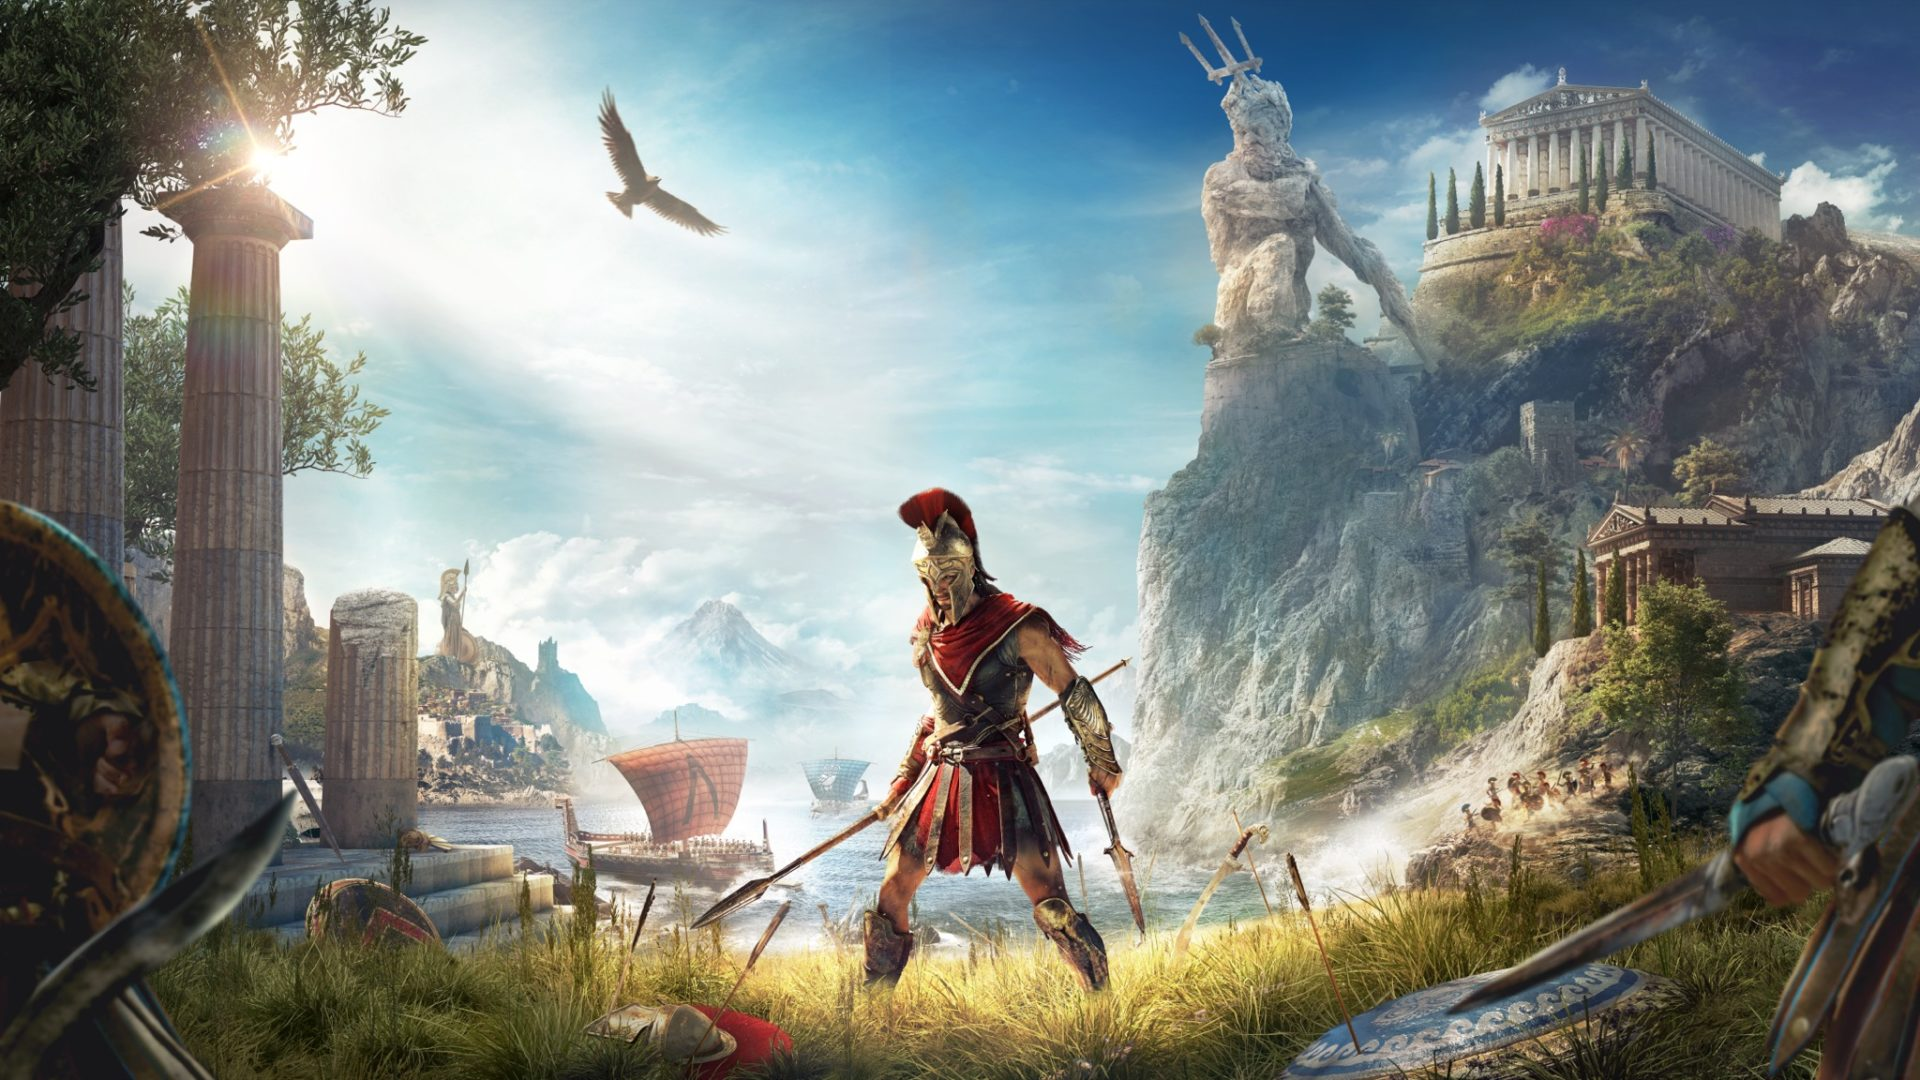 Assassin's Creed Odyssey ci porta nelle battaglie tra Sparta e Atene 1